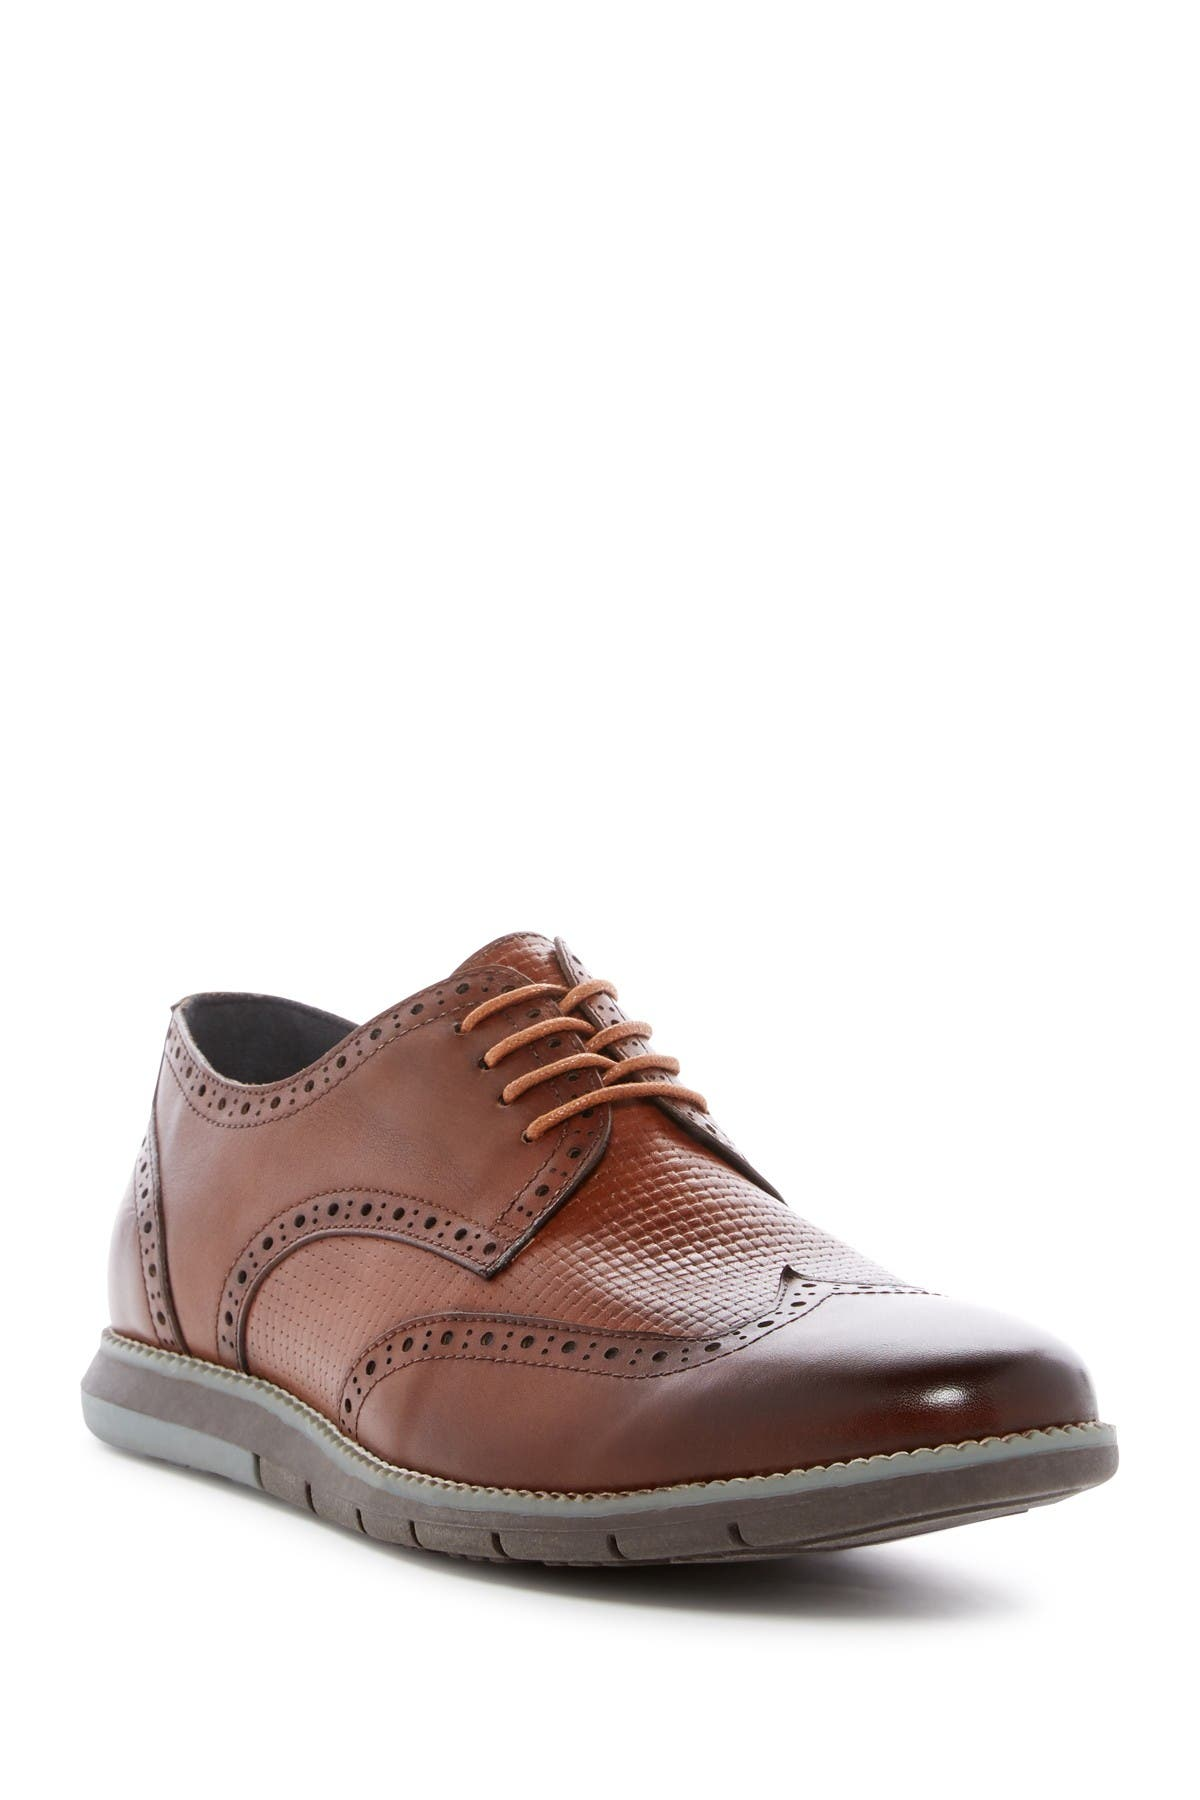 Image of Vintage Foundry Awesome Wingtip Derby